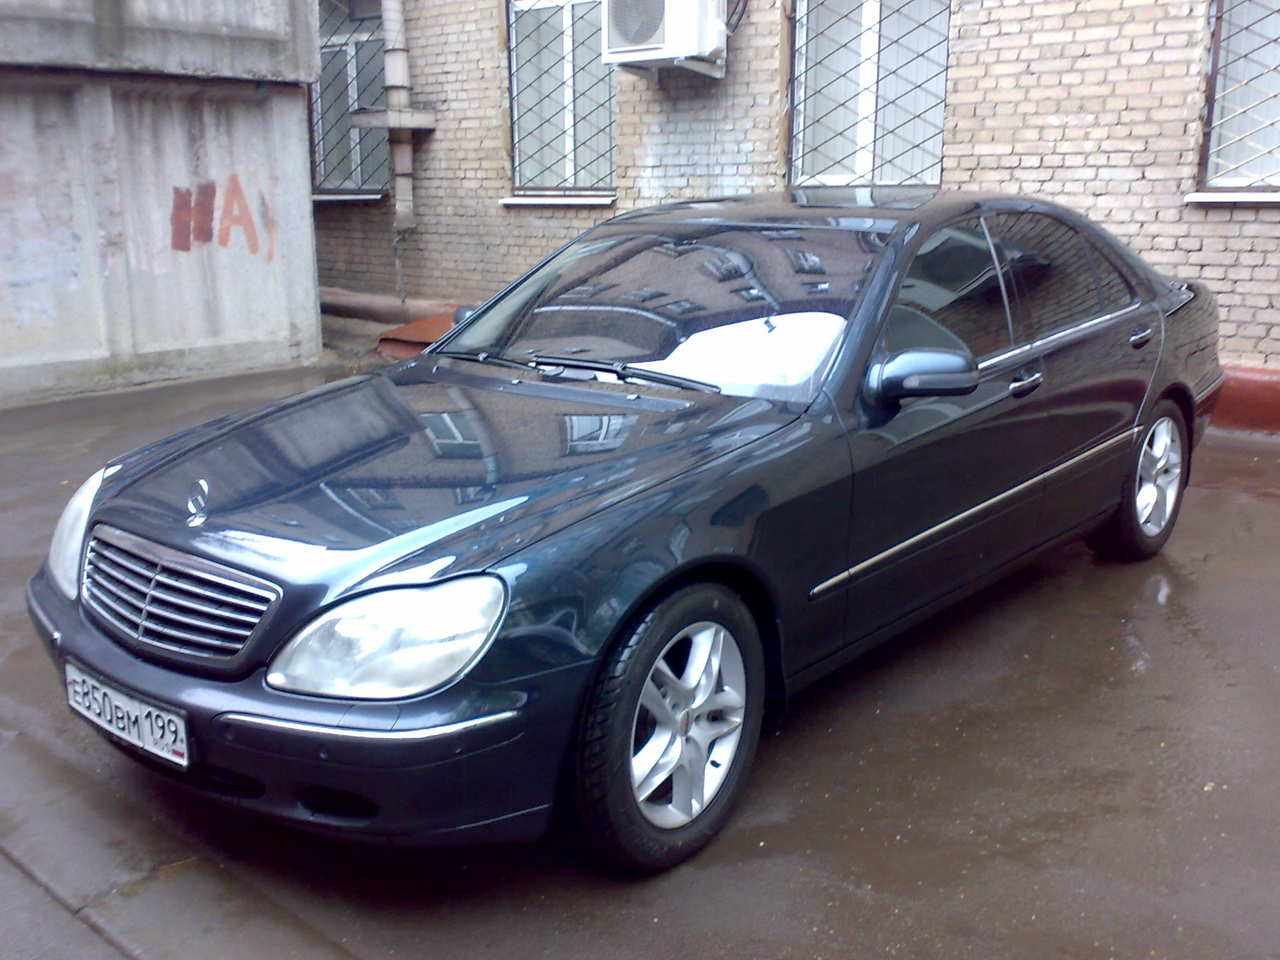 2001 mercedes benz s class for sale 5000cc gasoline fr or rr automatic for sale. Black Bedroom Furniture Sets. Home Design Ideas